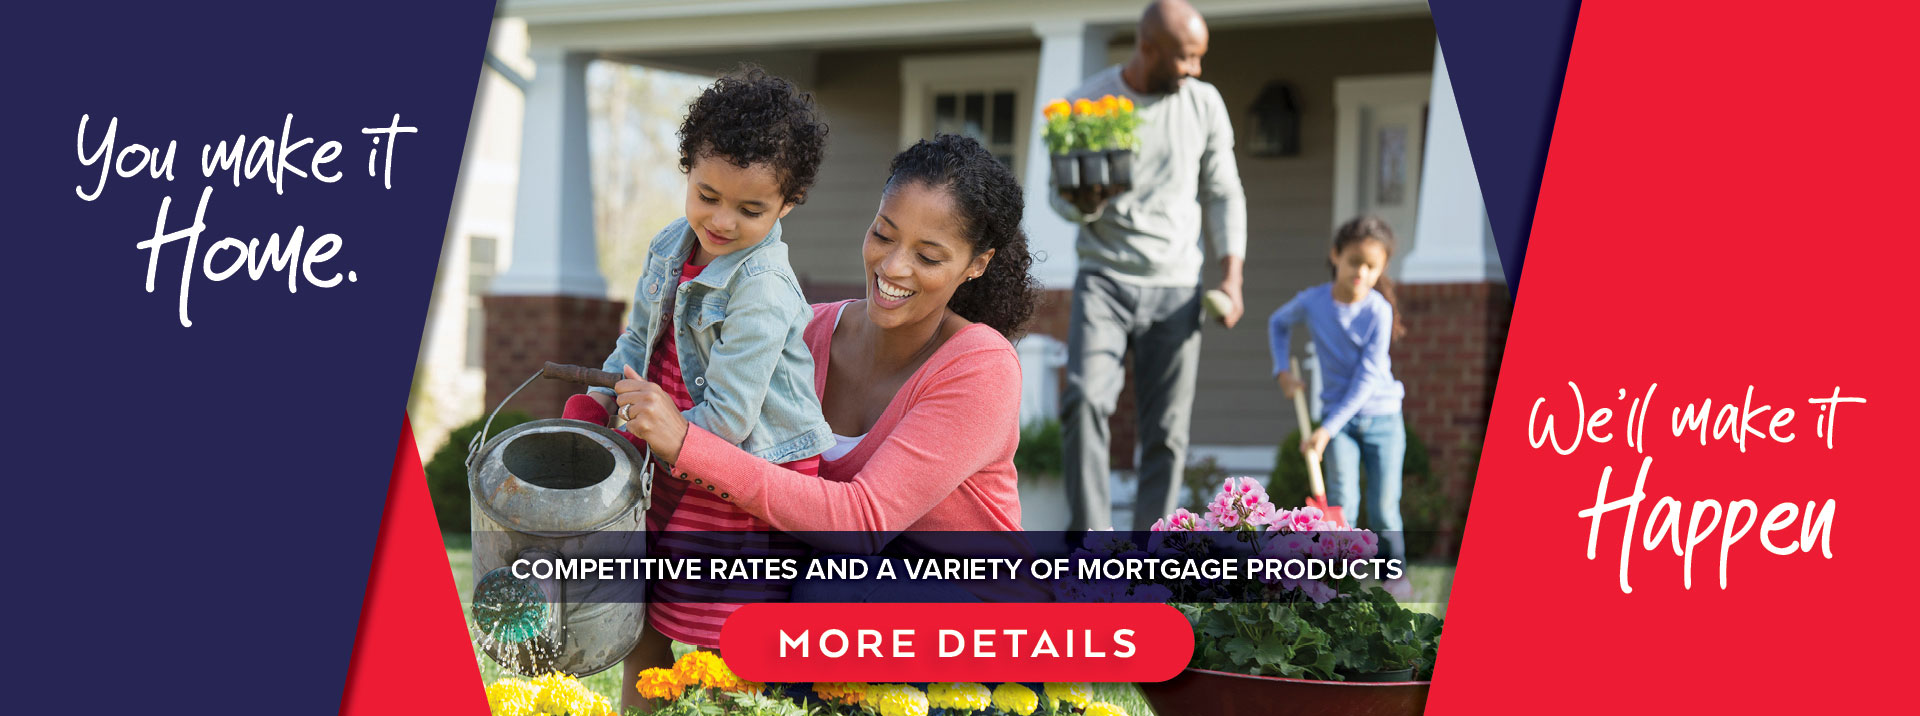 You make it home. We make it happen. Competitive rates & a variety of mortgage products